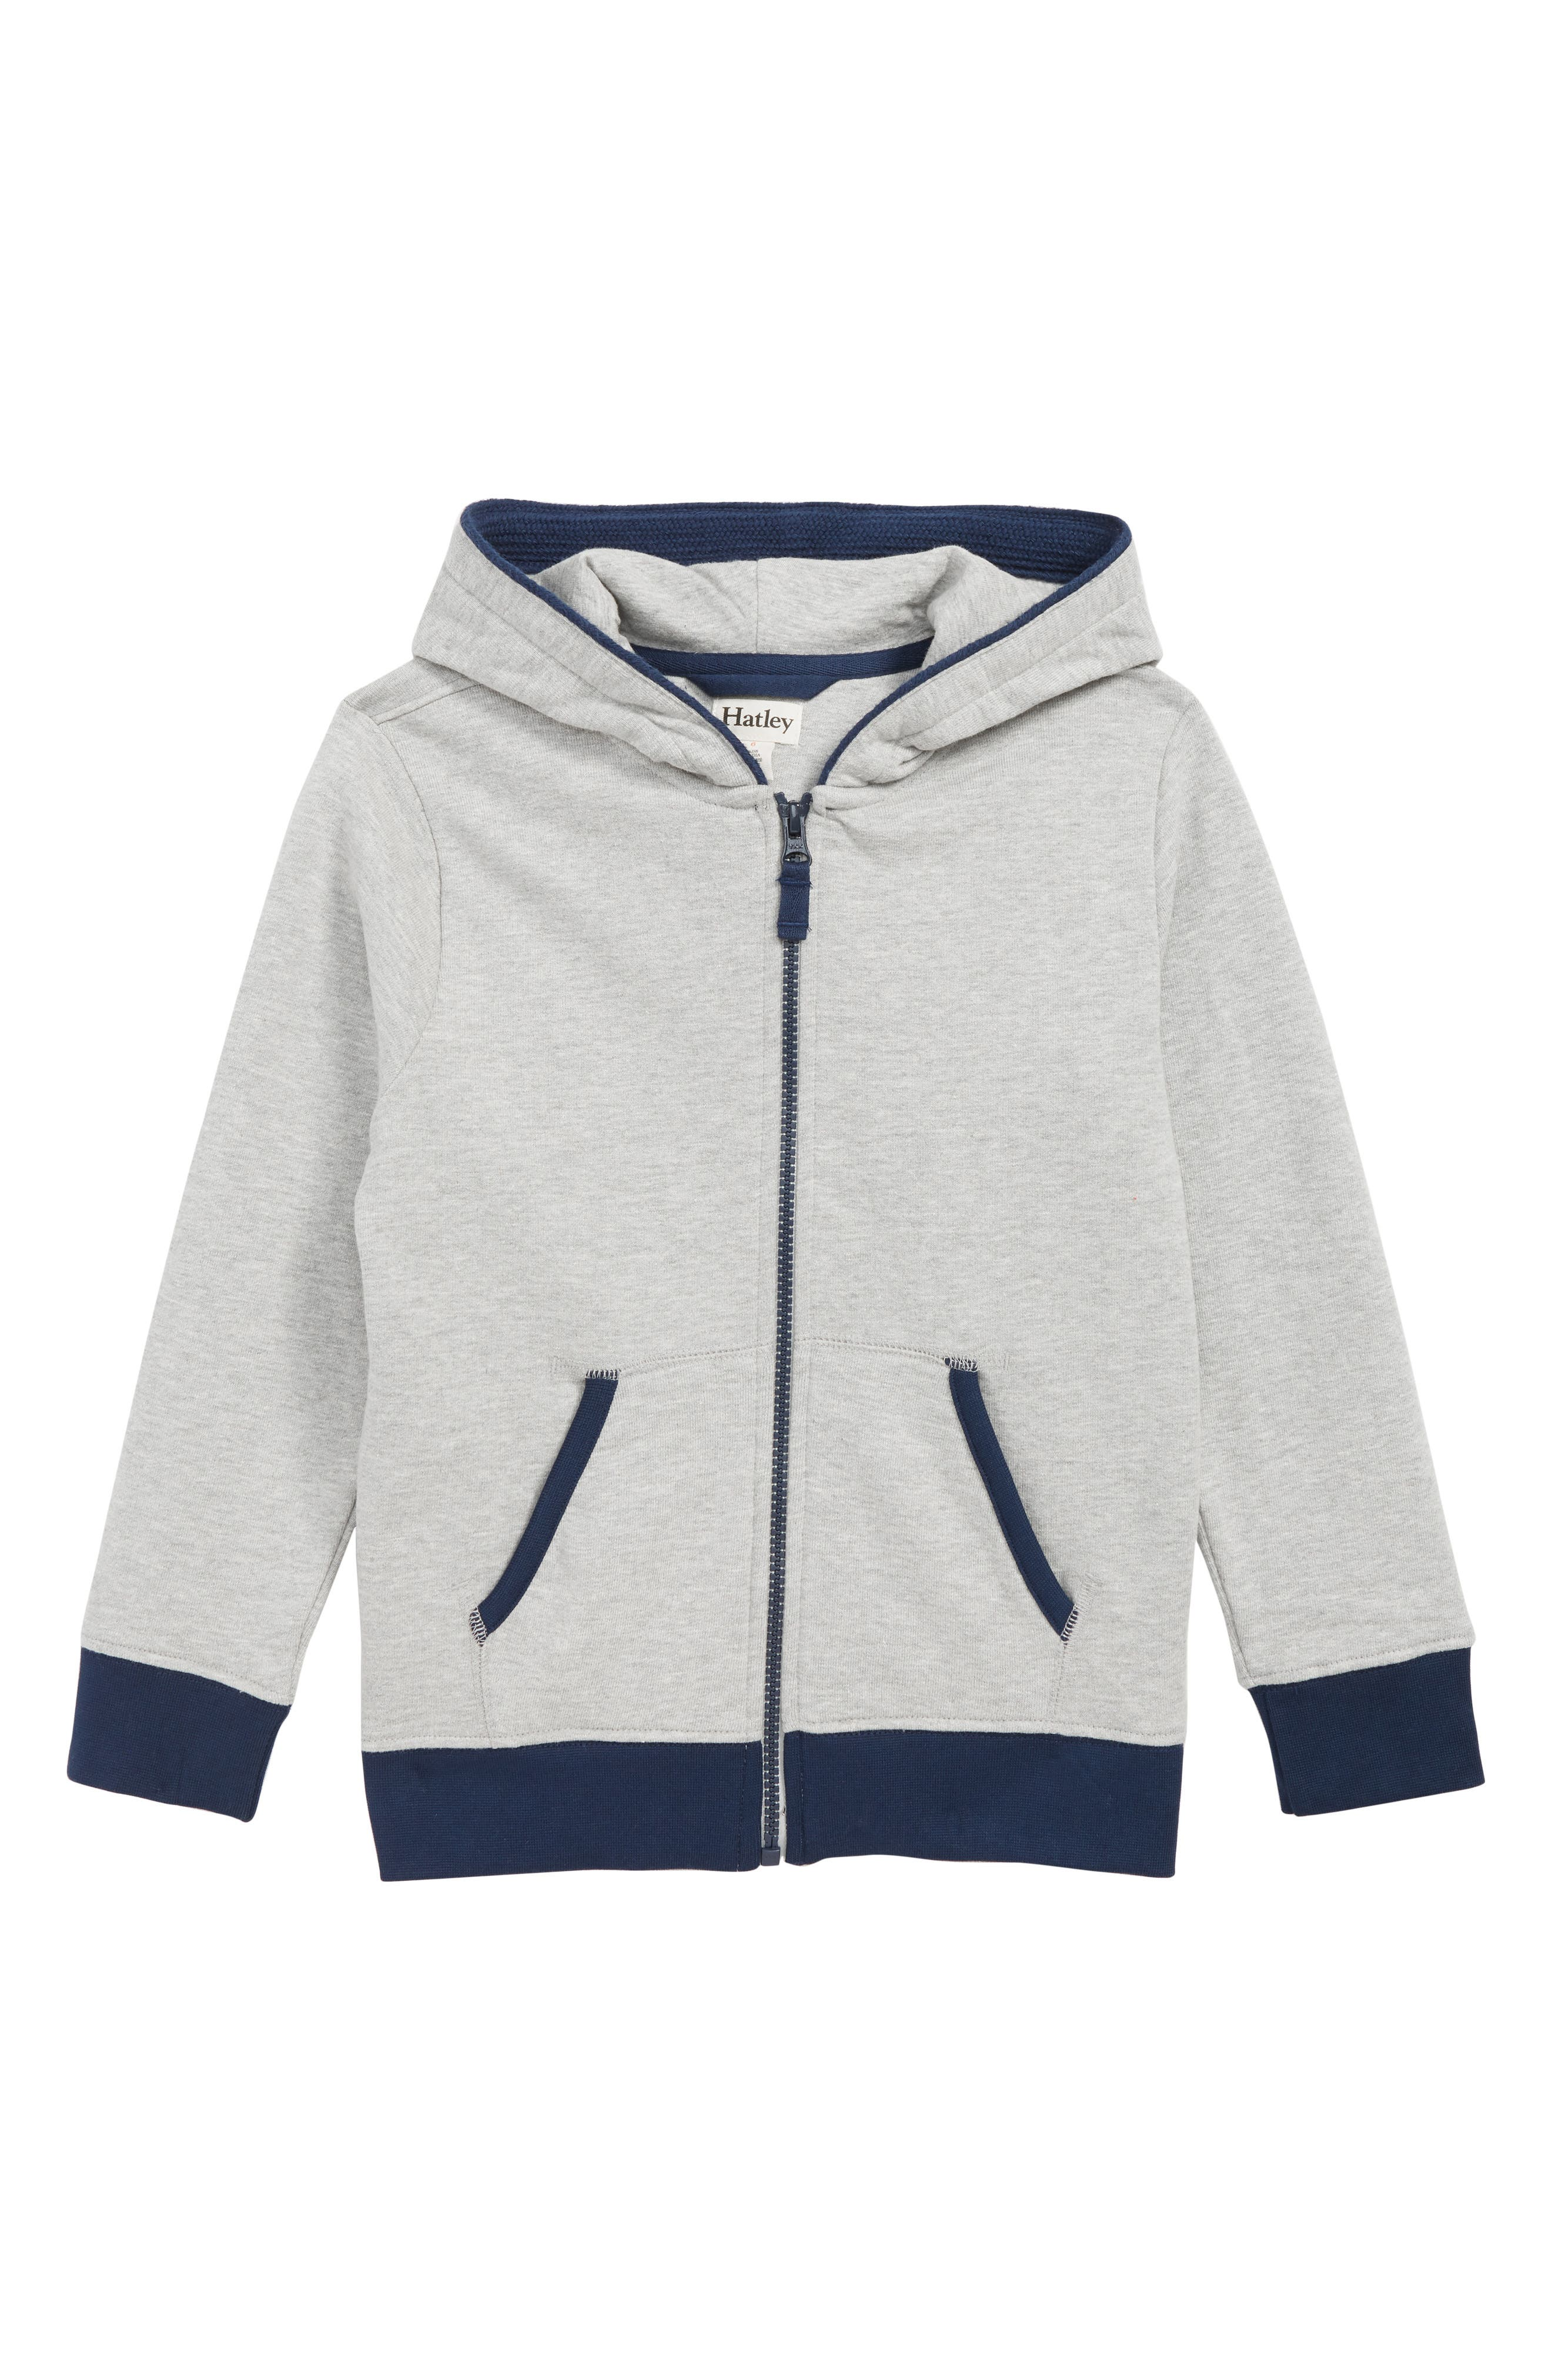 HATLEY Full Zip Hoodie, Main, color, GREY